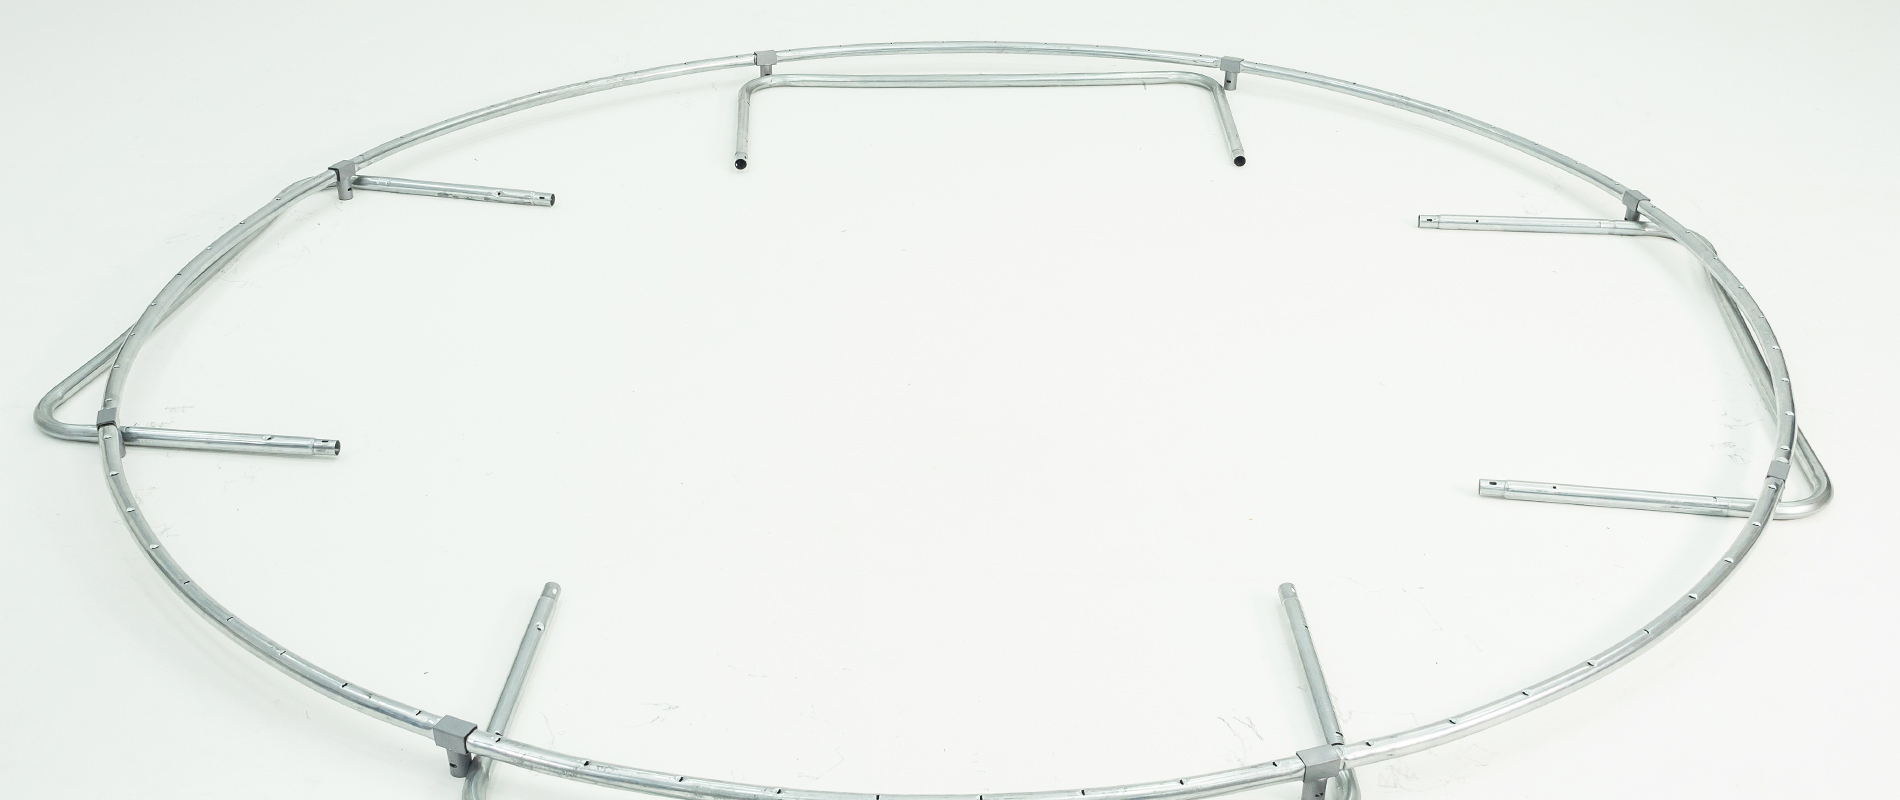 how to assemble a trampoline frame